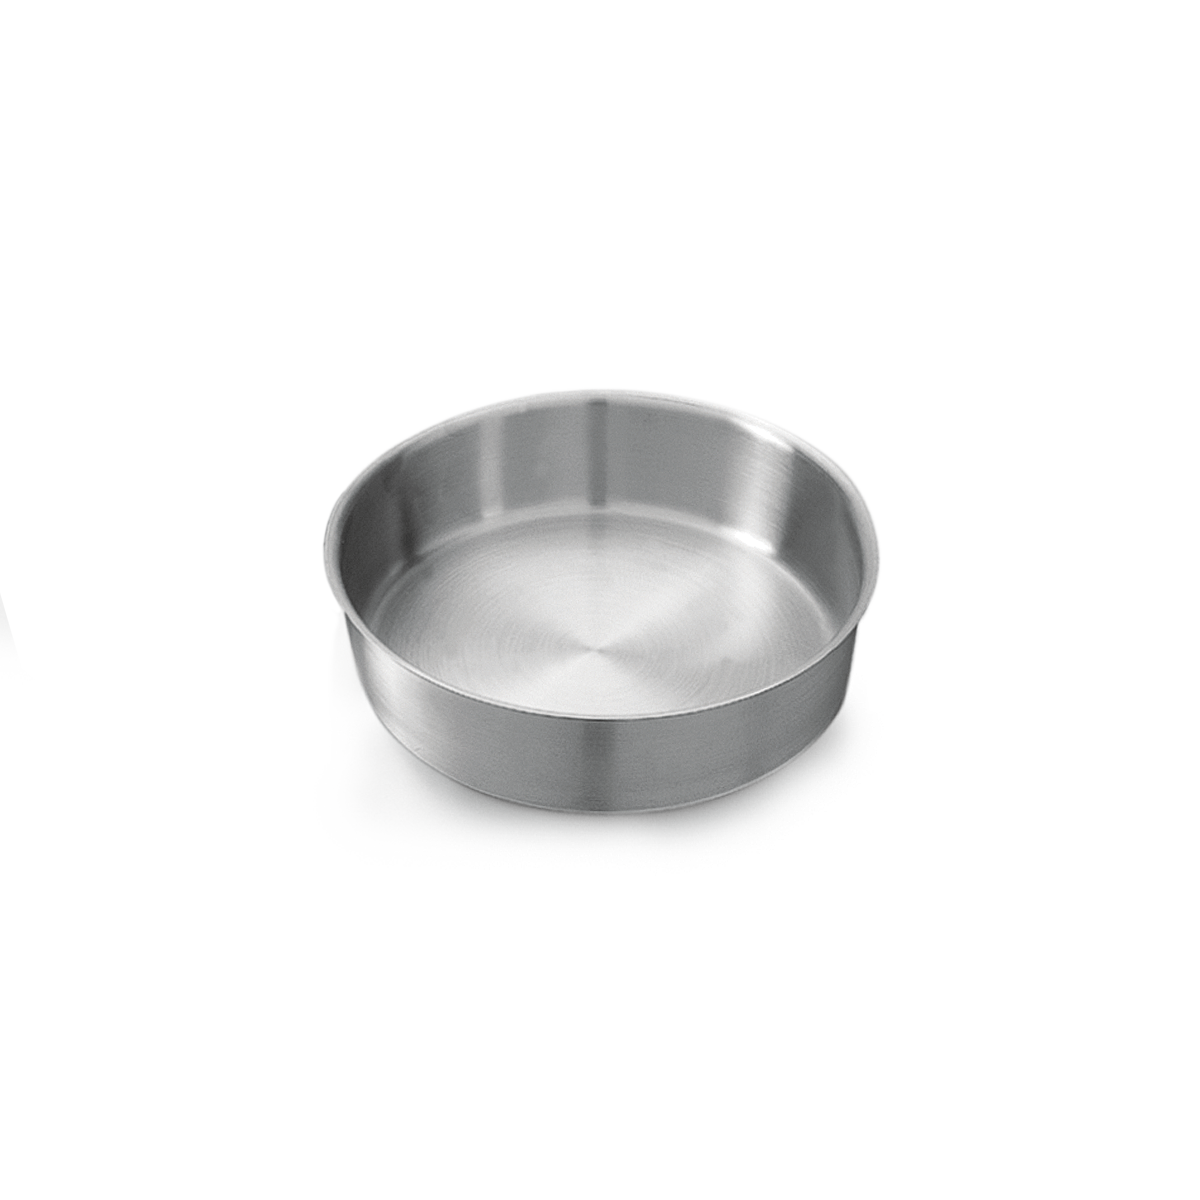 24cm Baking Tin By AMC Cookware